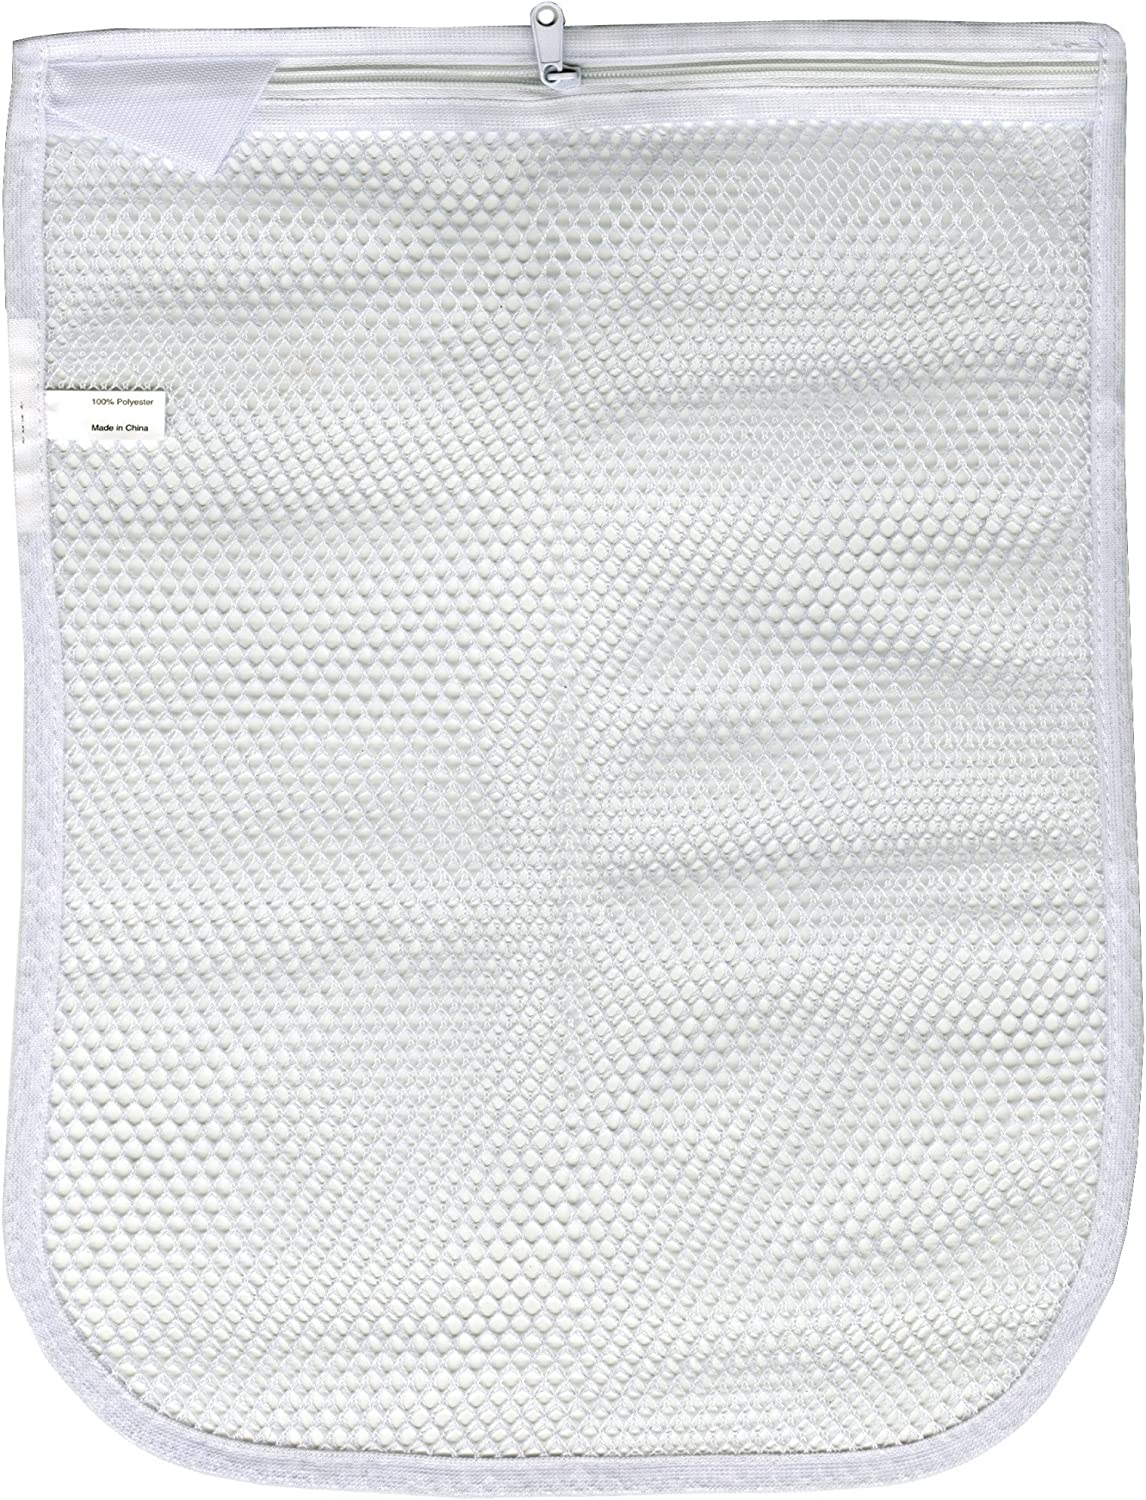 E-Cloth Laundry Bag - Brilliant for Keeping Your Microfiber Cloths Together in The Wash